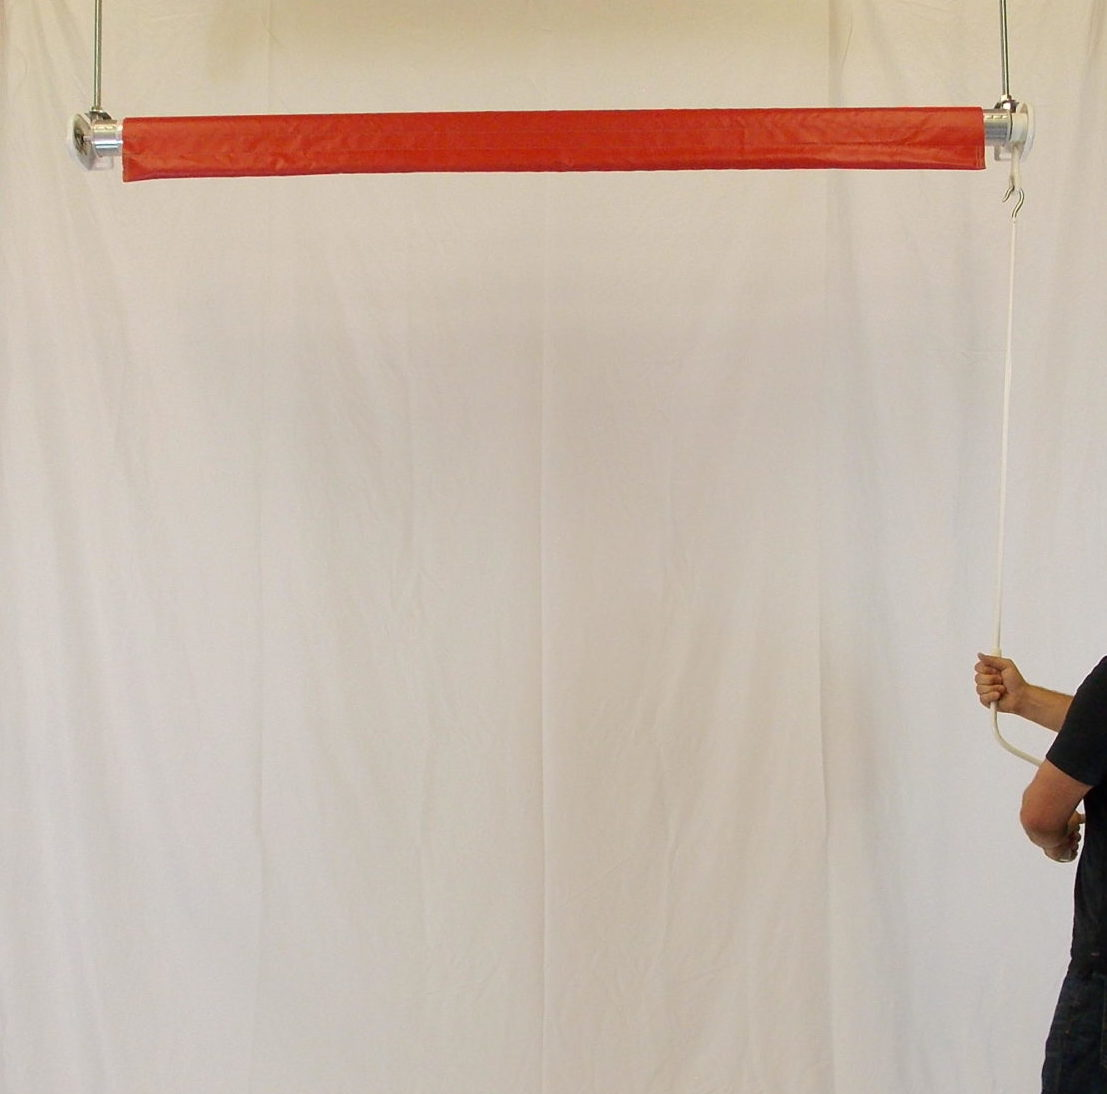 Industrial Vinyl Roll Up Curtains – Crank Style